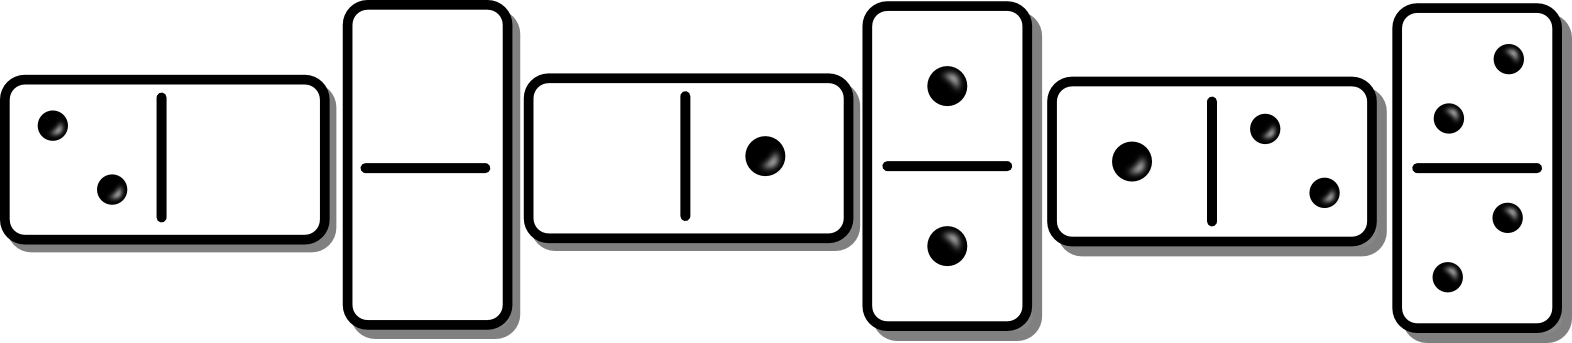 Domino clipart dice. Animated